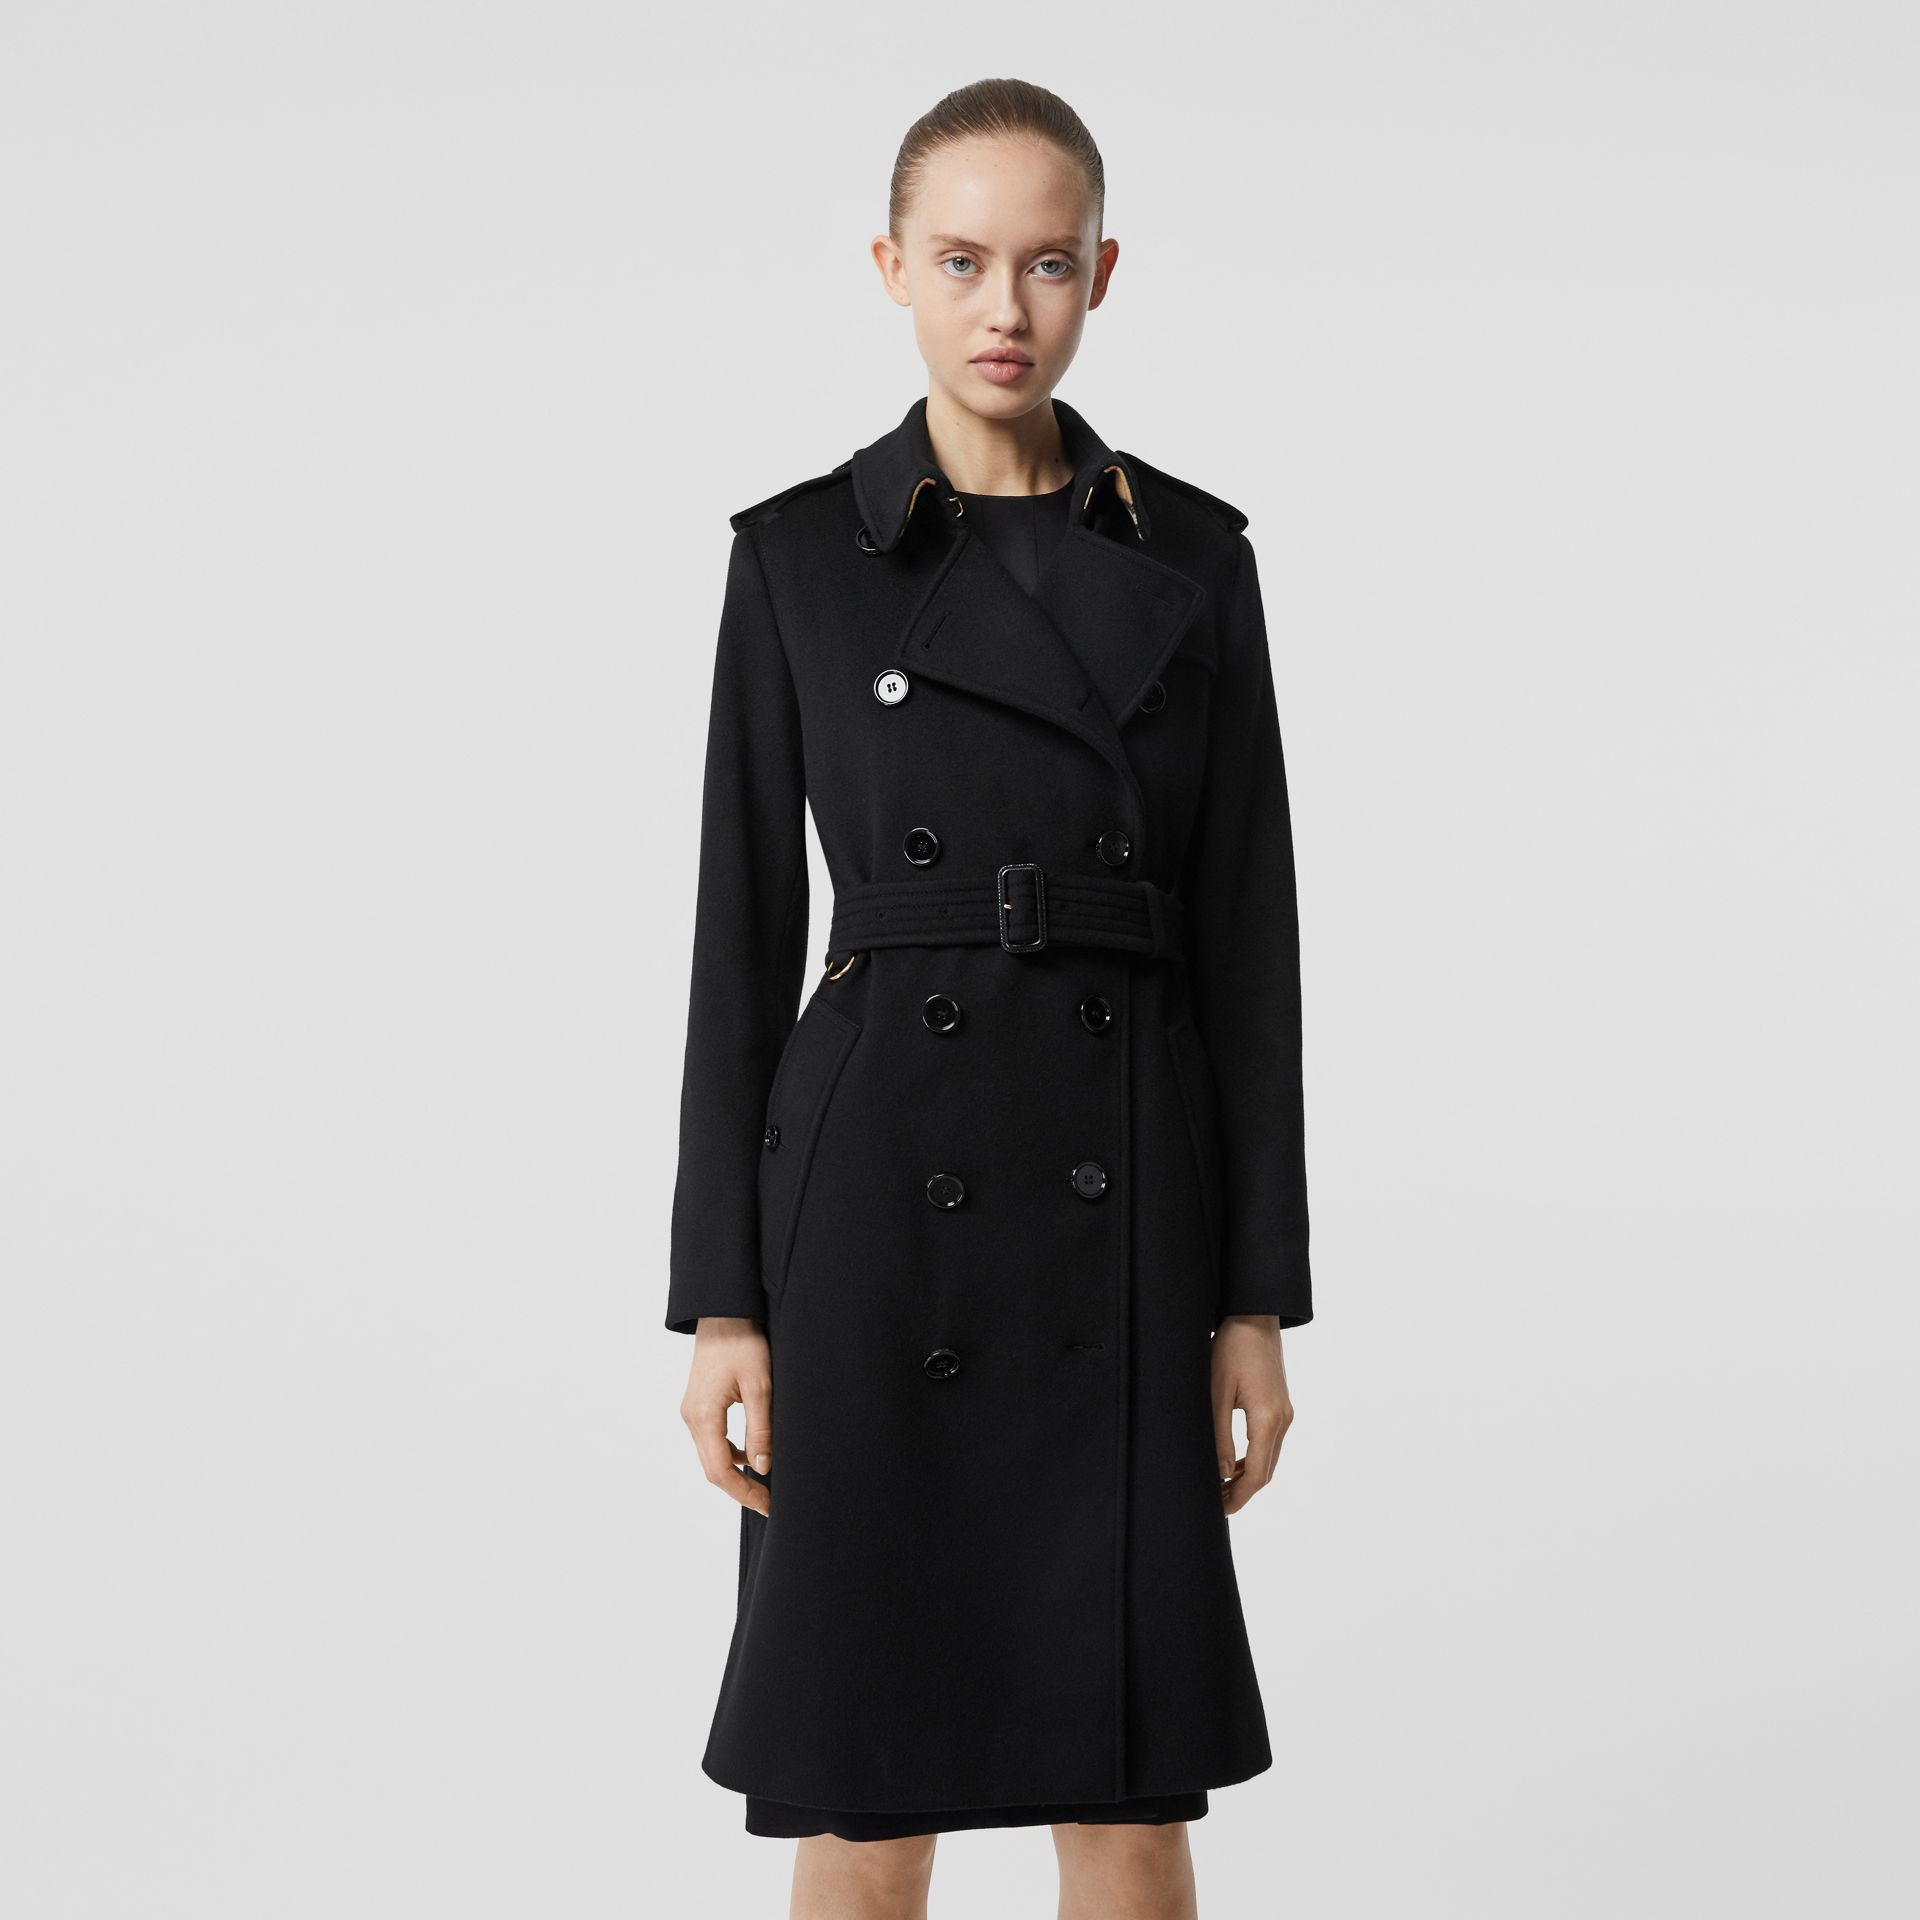 Cashmere Trench Coat in Black - Women | Burberry Australia - gallery image 6